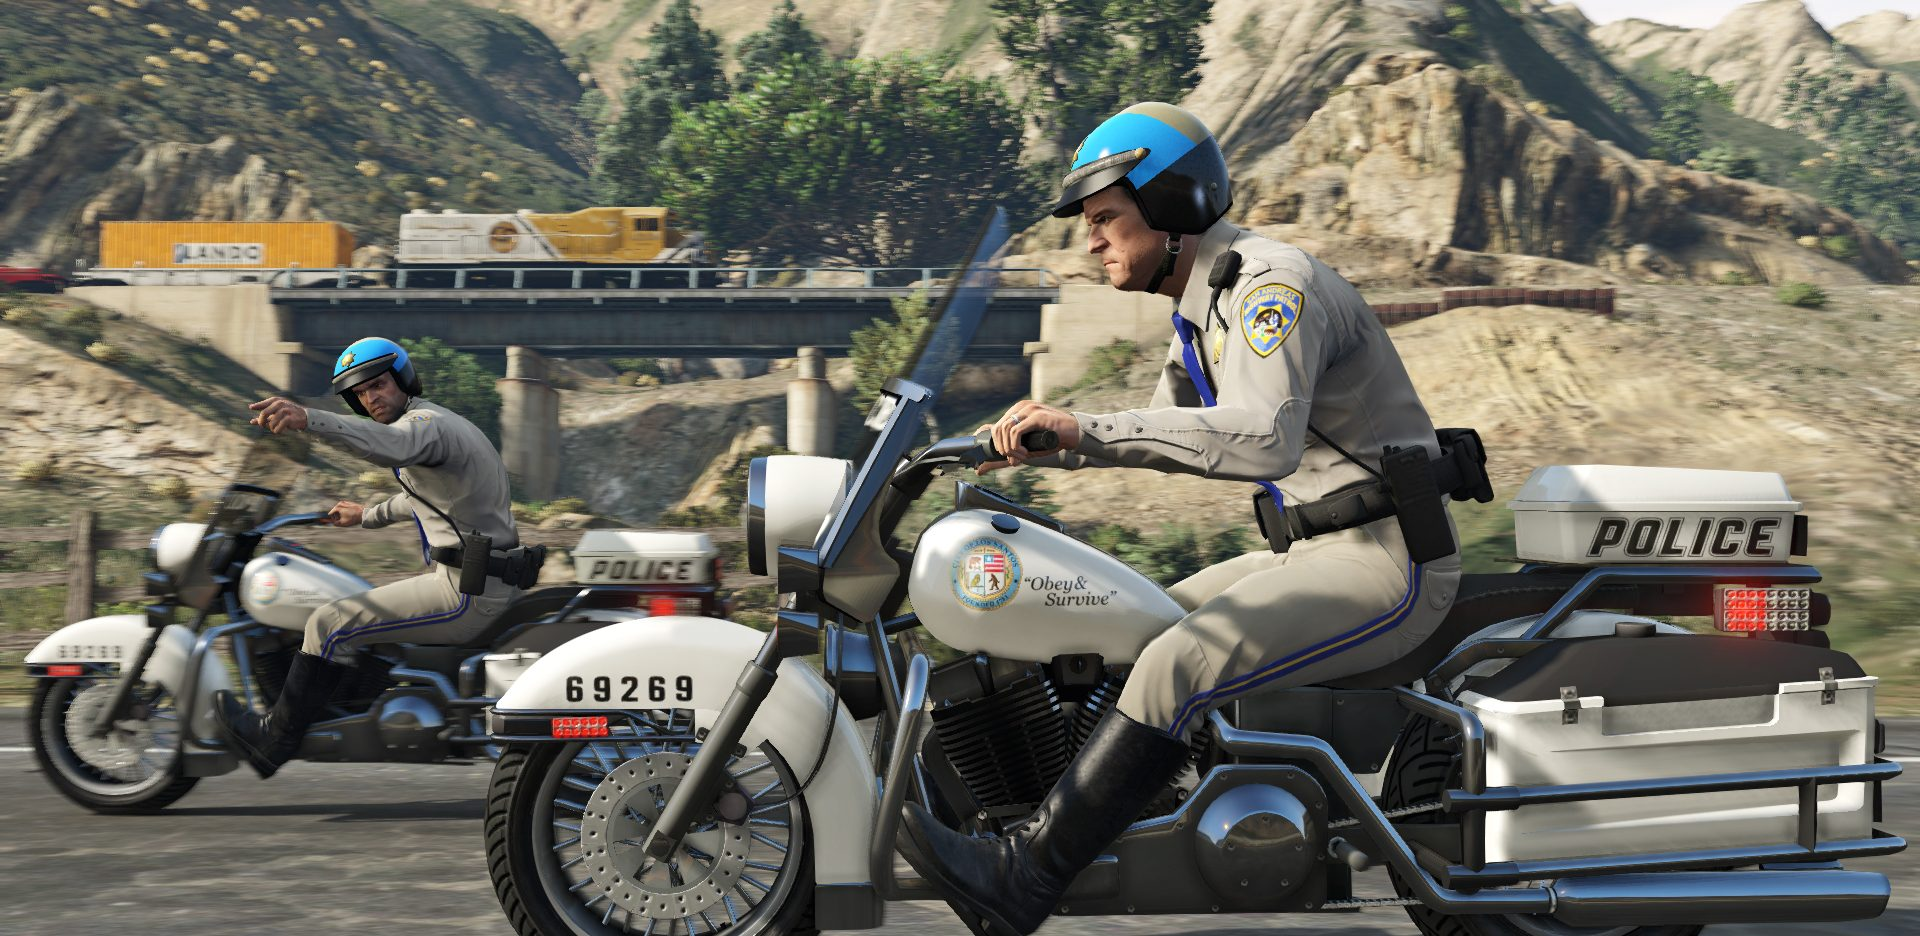 Grand Theft Auto V Tops PlayStation Store Charts 5 Years After Release